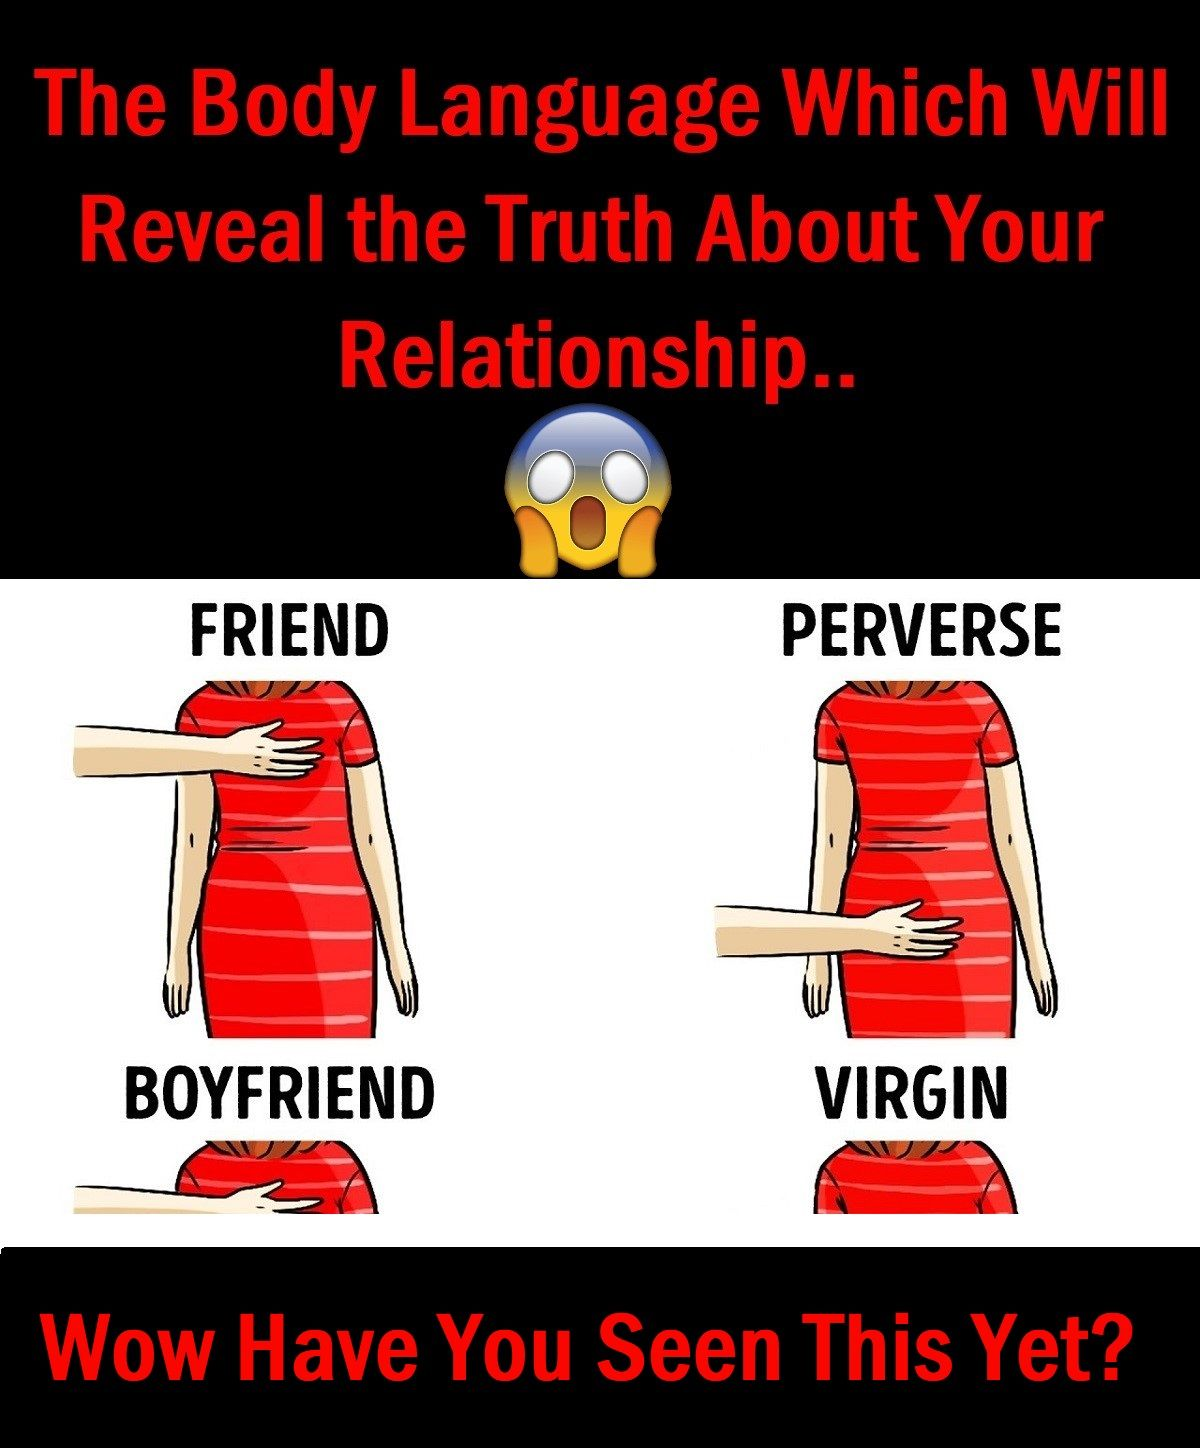 Different Types Of Body Language That Can Reveal The Truth